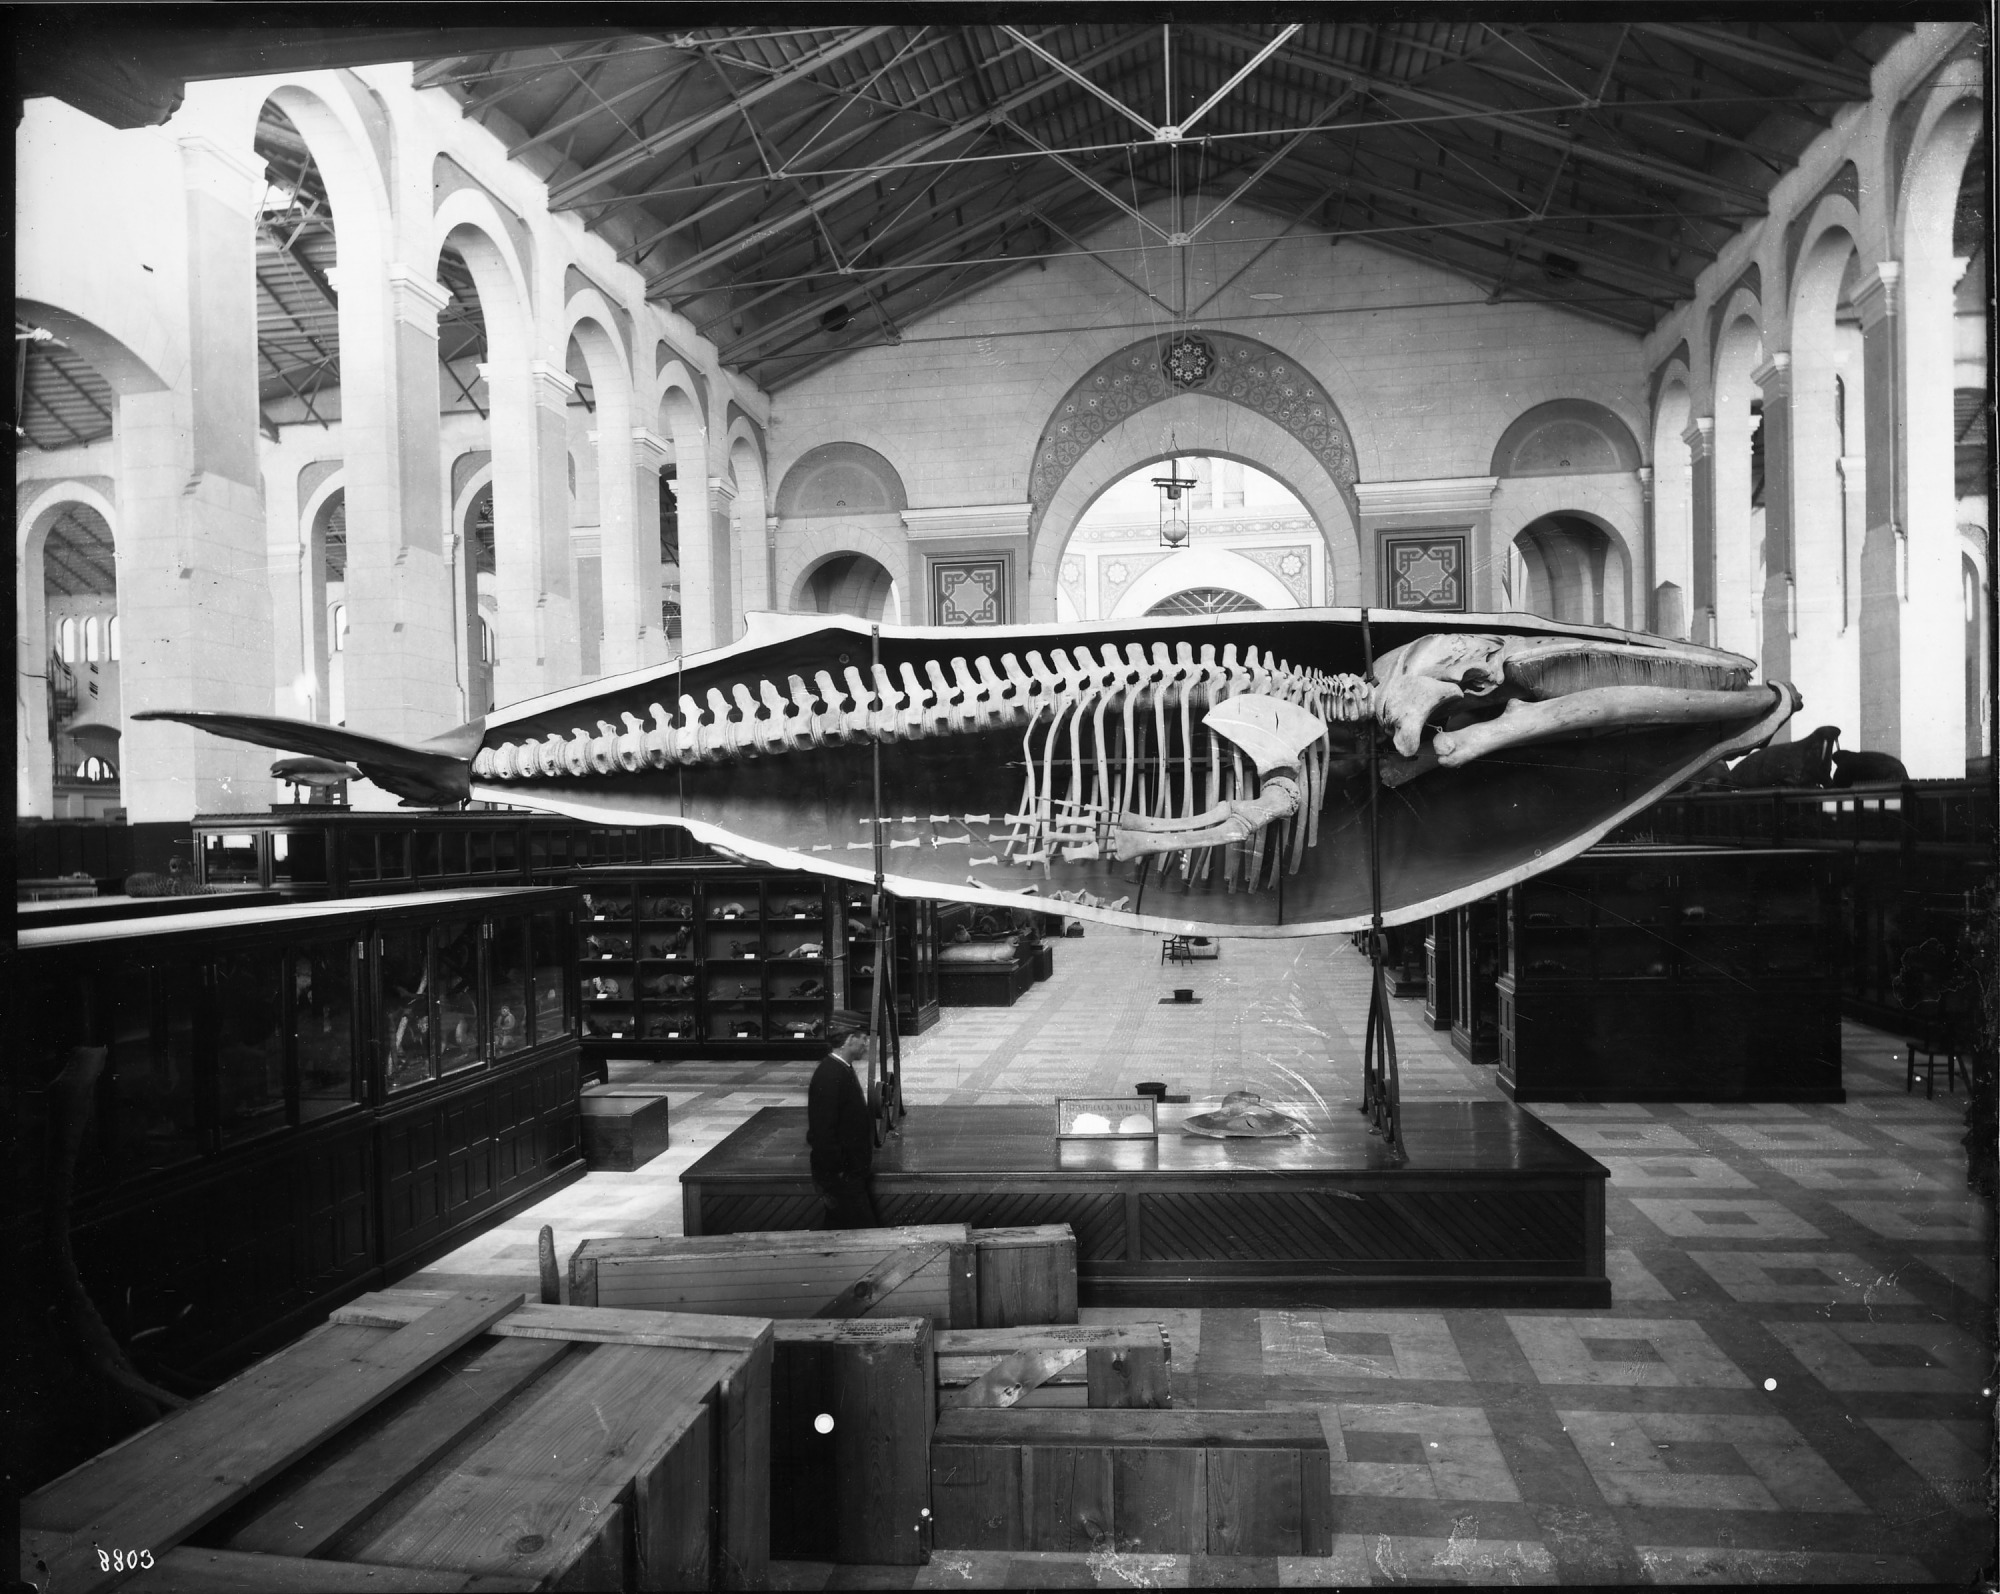 images for Whale Cast in South Hall of United States National Museum